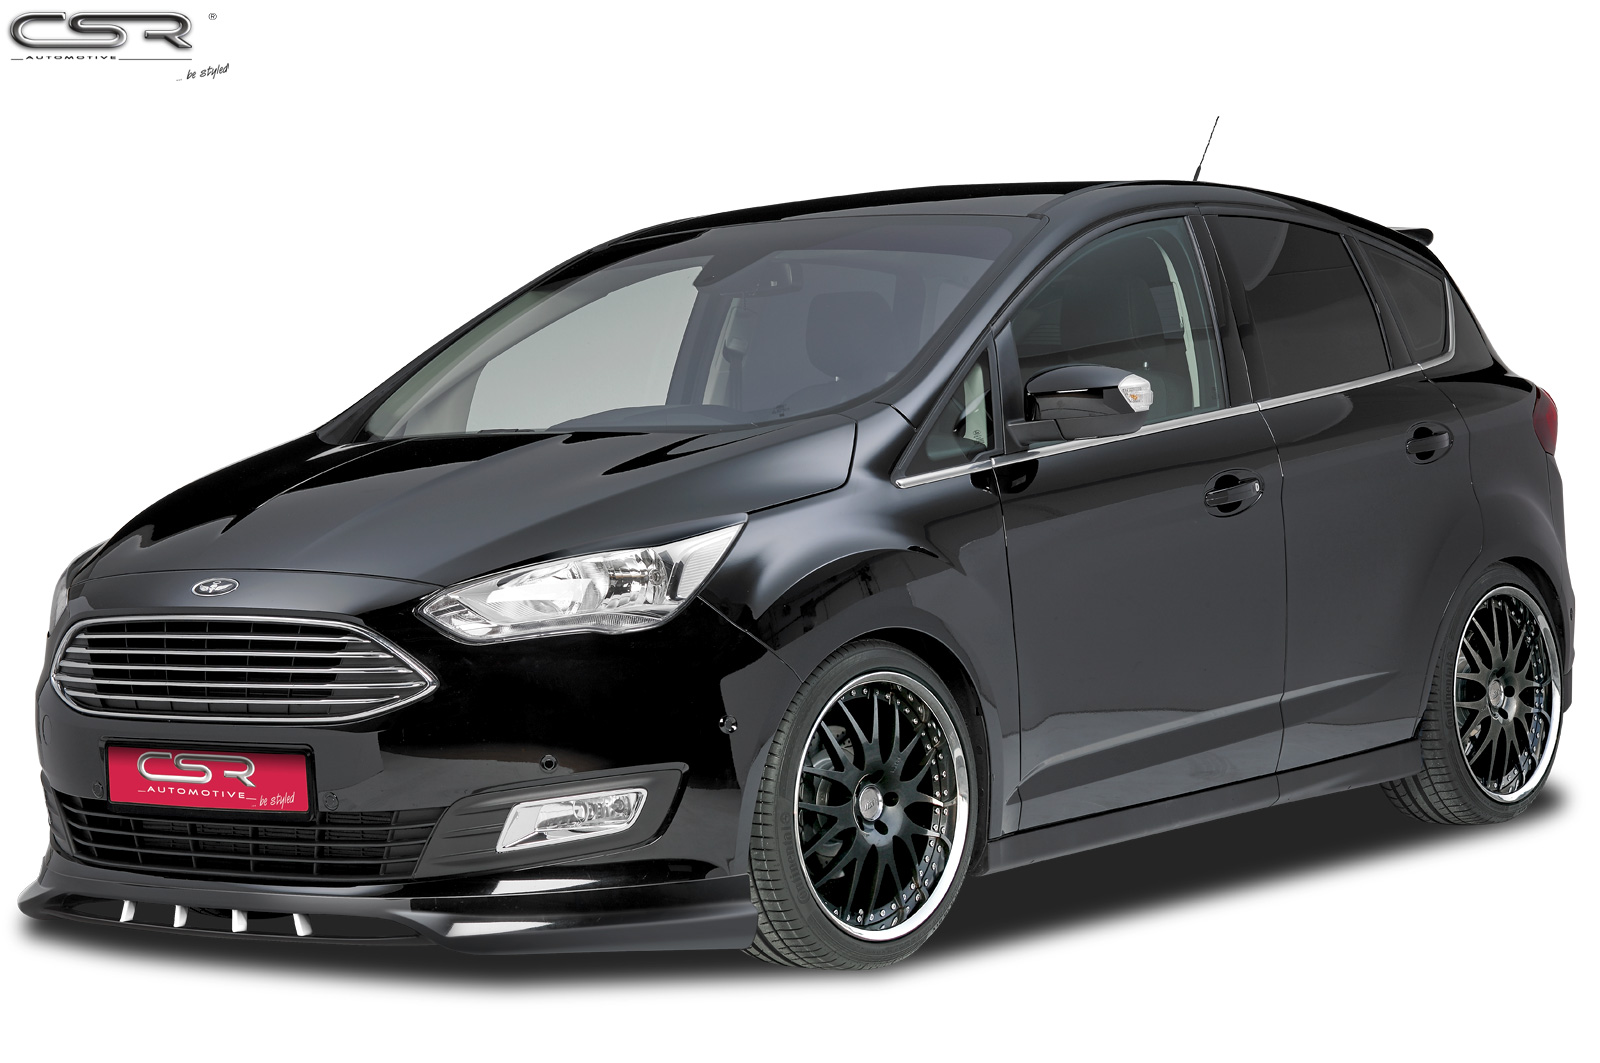 ford ford c max grand c max p edn spoiler fa254 csr tuning shop. Black Bedroom Furniture Sets. Home Design Ideas